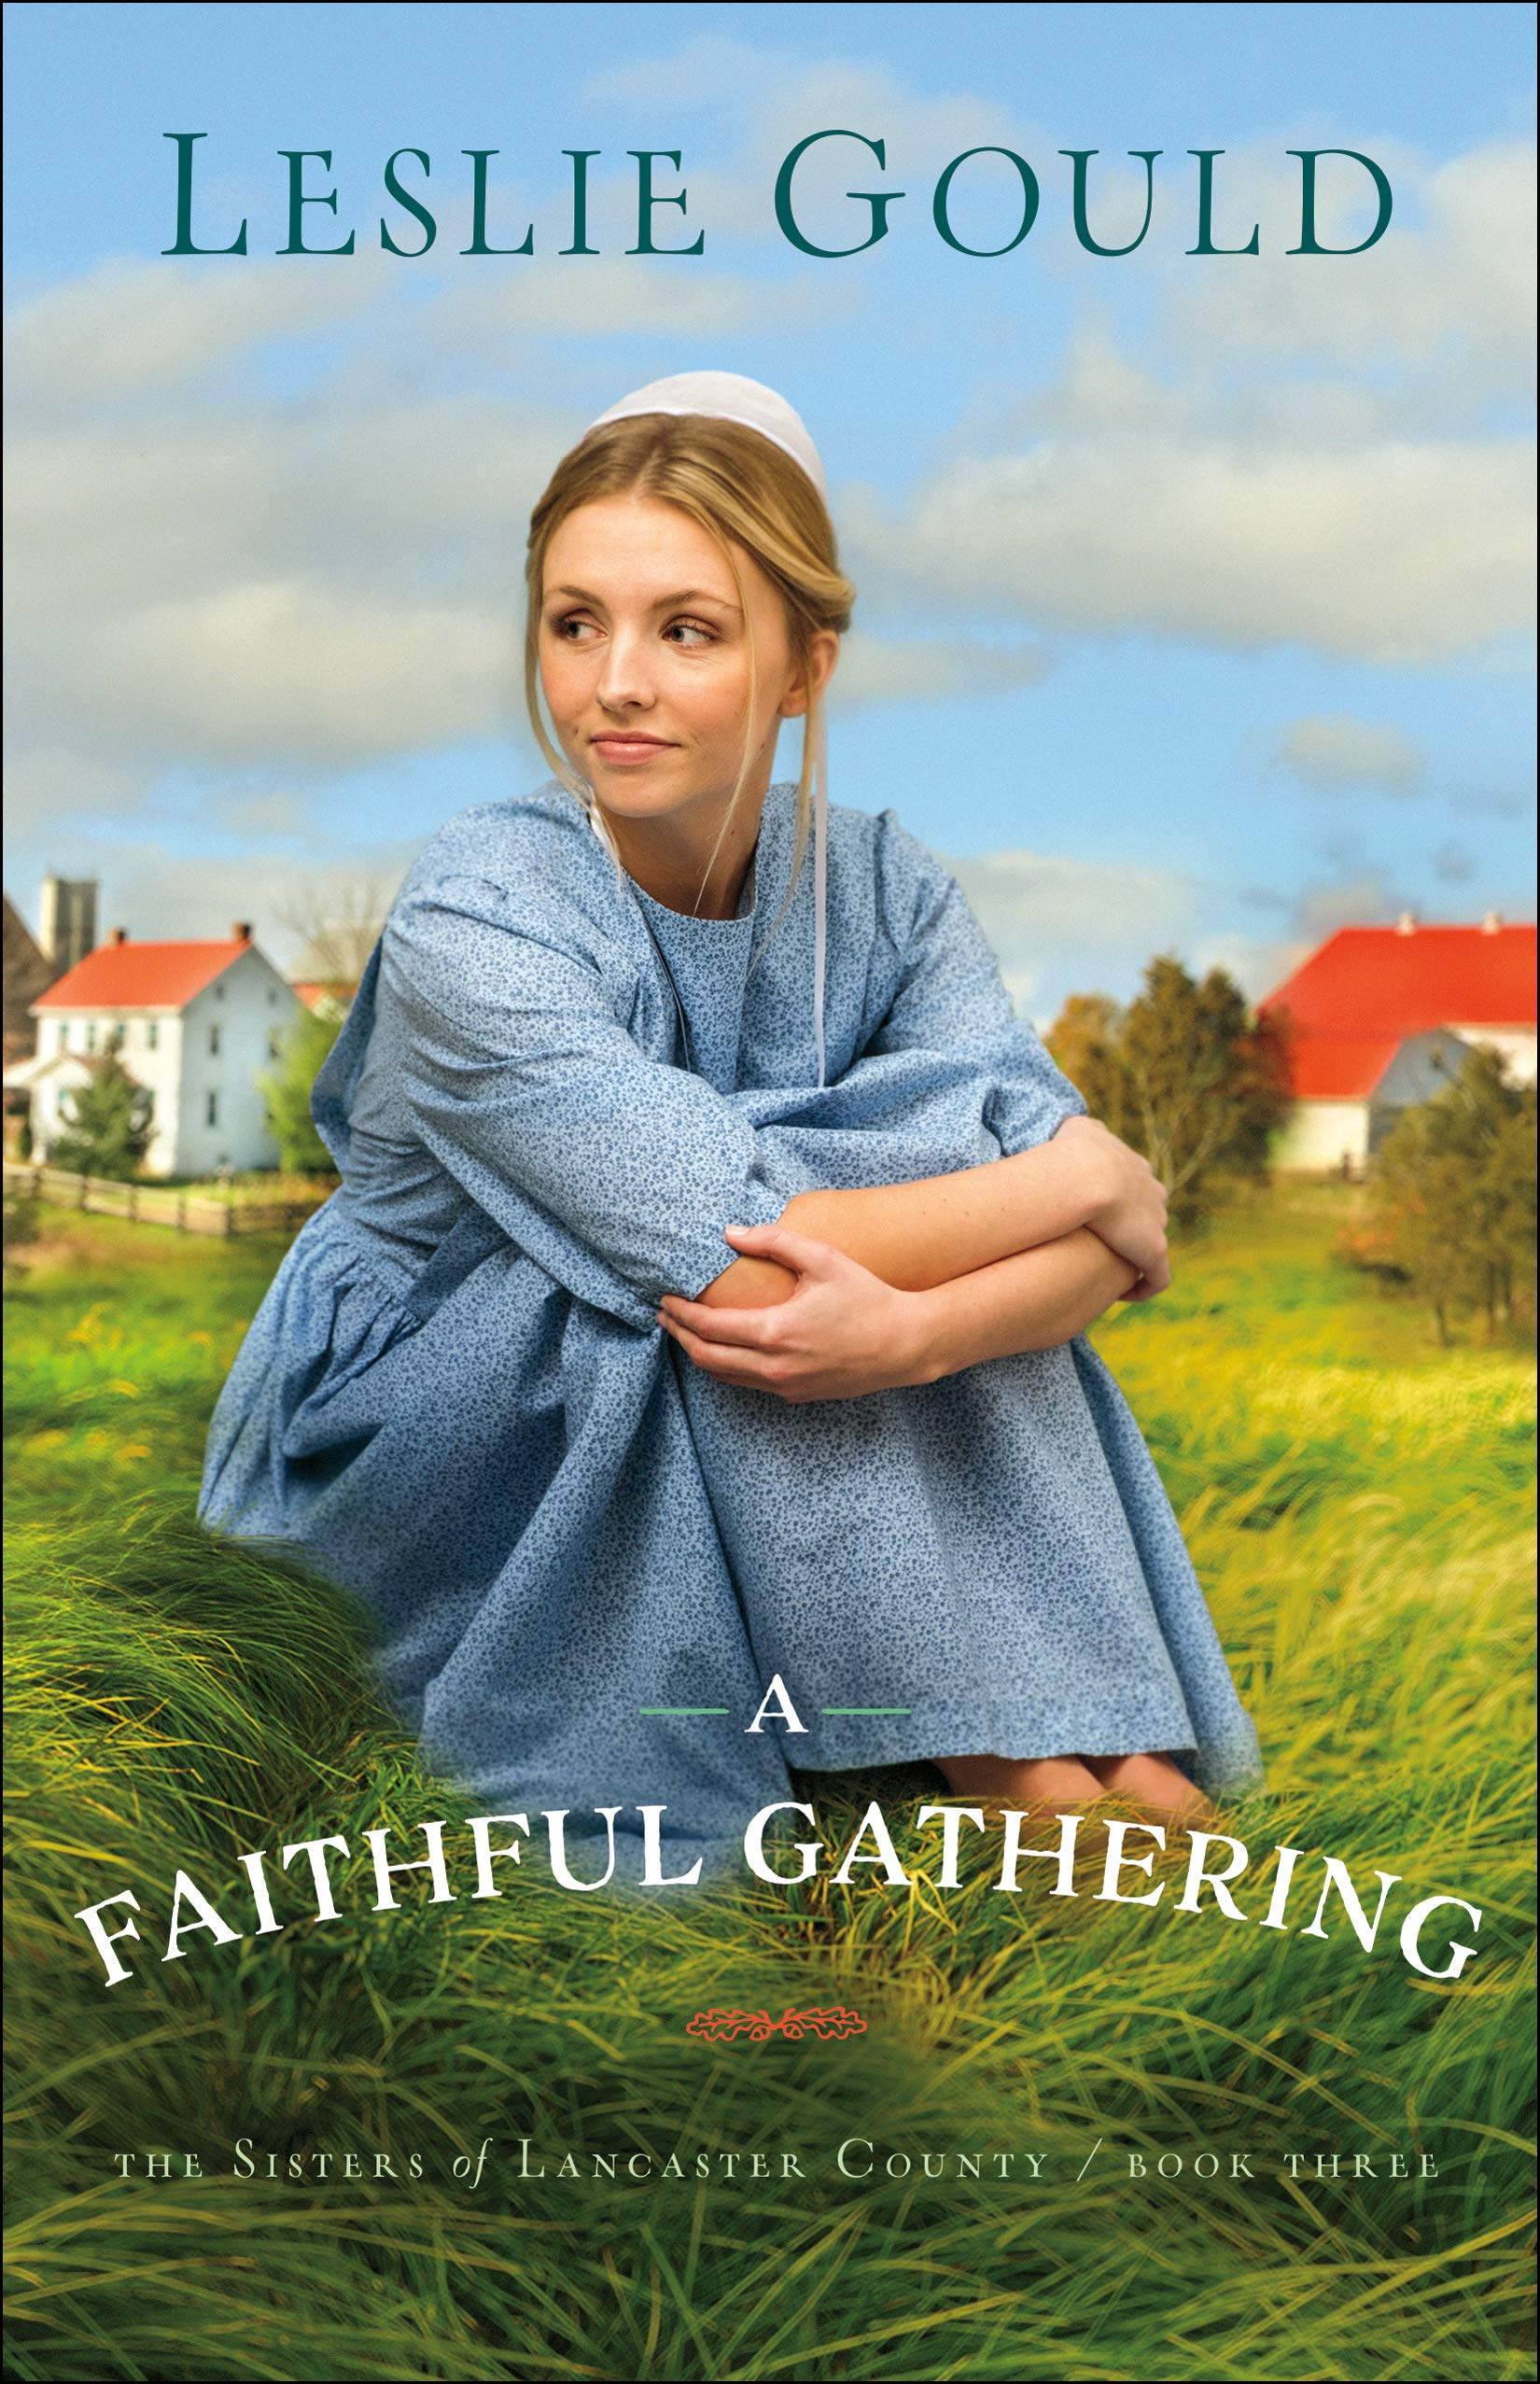 A Faithful Gathering (Sisters of Lancaster County) (The Sisters of Lancaster  County): Amazon.co.uk: Leslie Gould: 9780764219719: Books